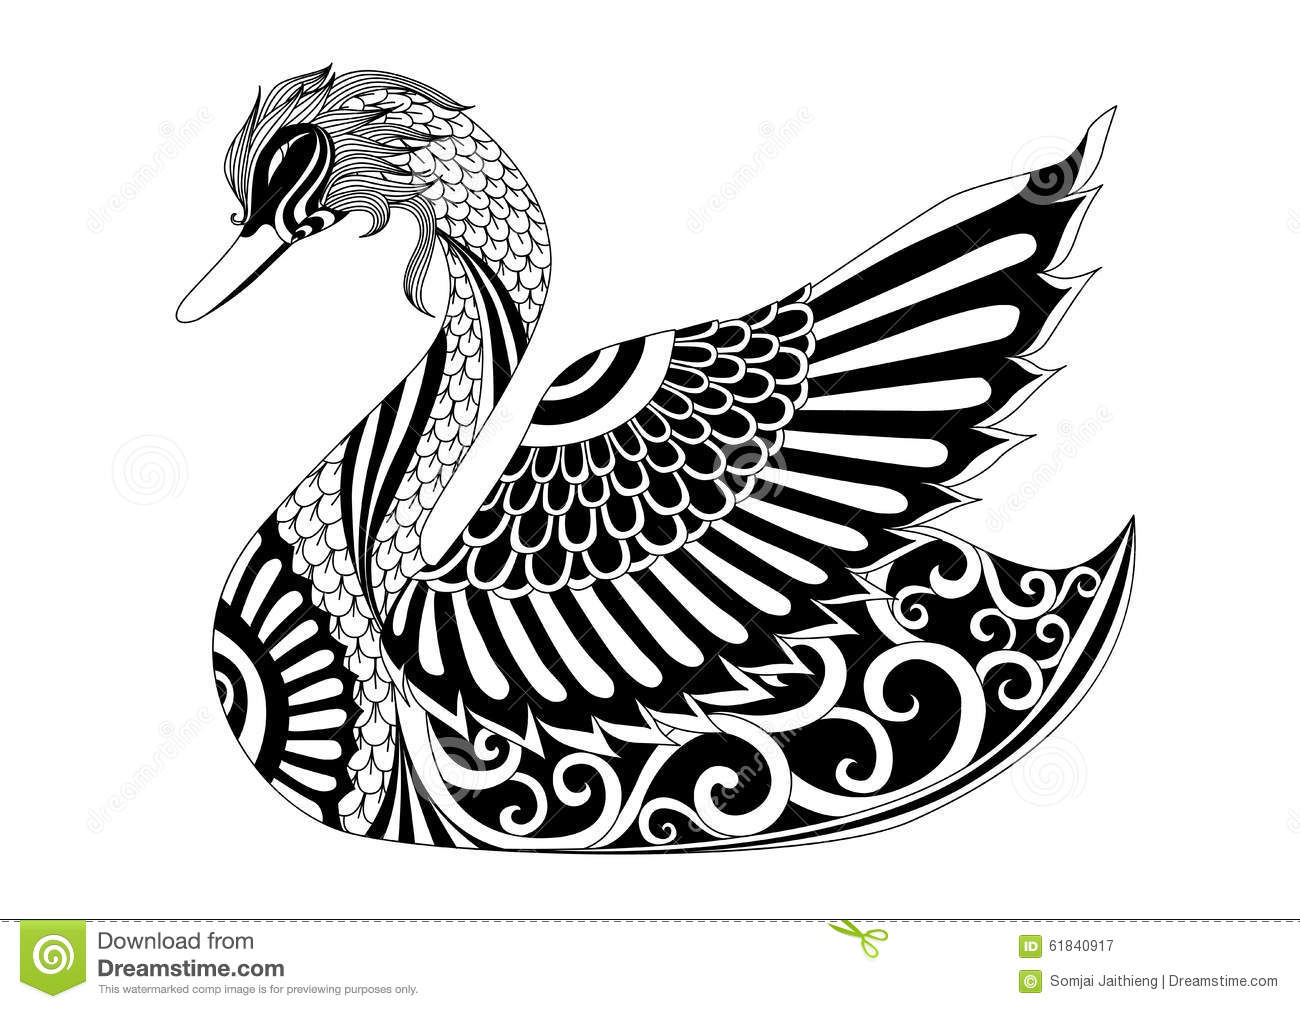 Drawing Zentangle Swan For Coloring Page, Shirt Design Effect, Logo ...